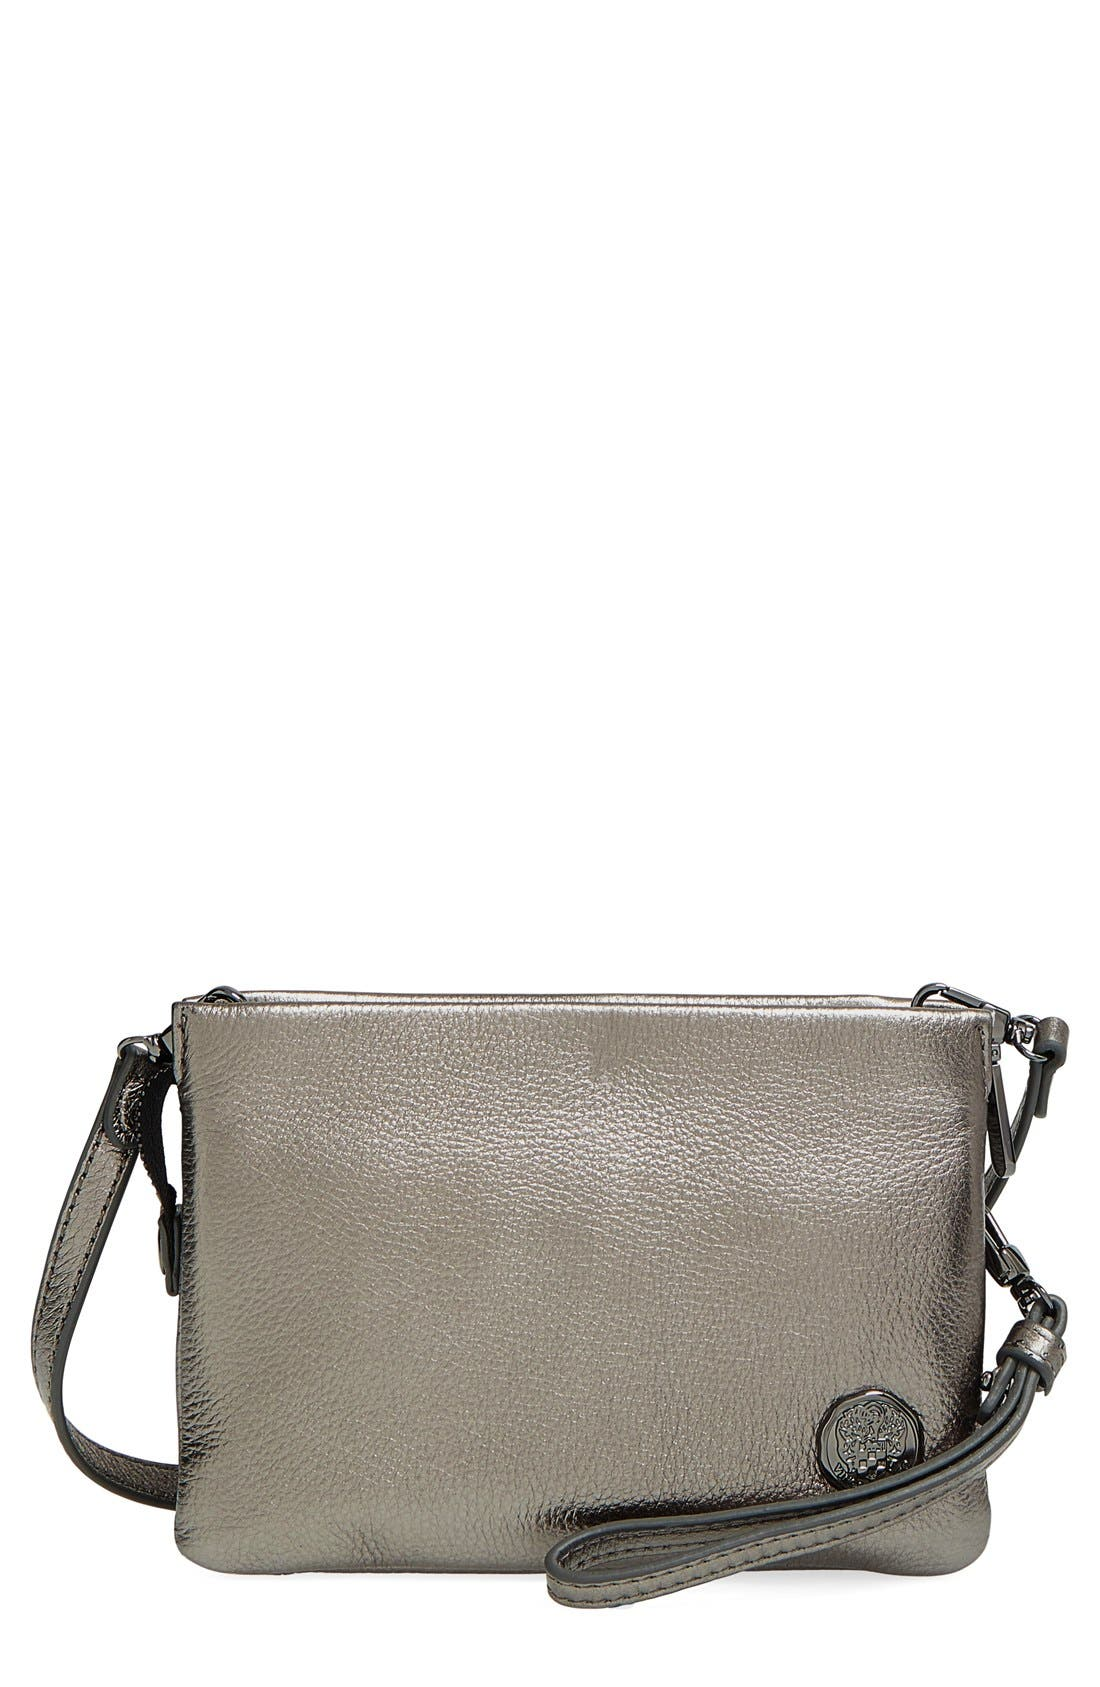 'Cami' Leather Crossbody Bag,                             Main thumbnail 6, color,